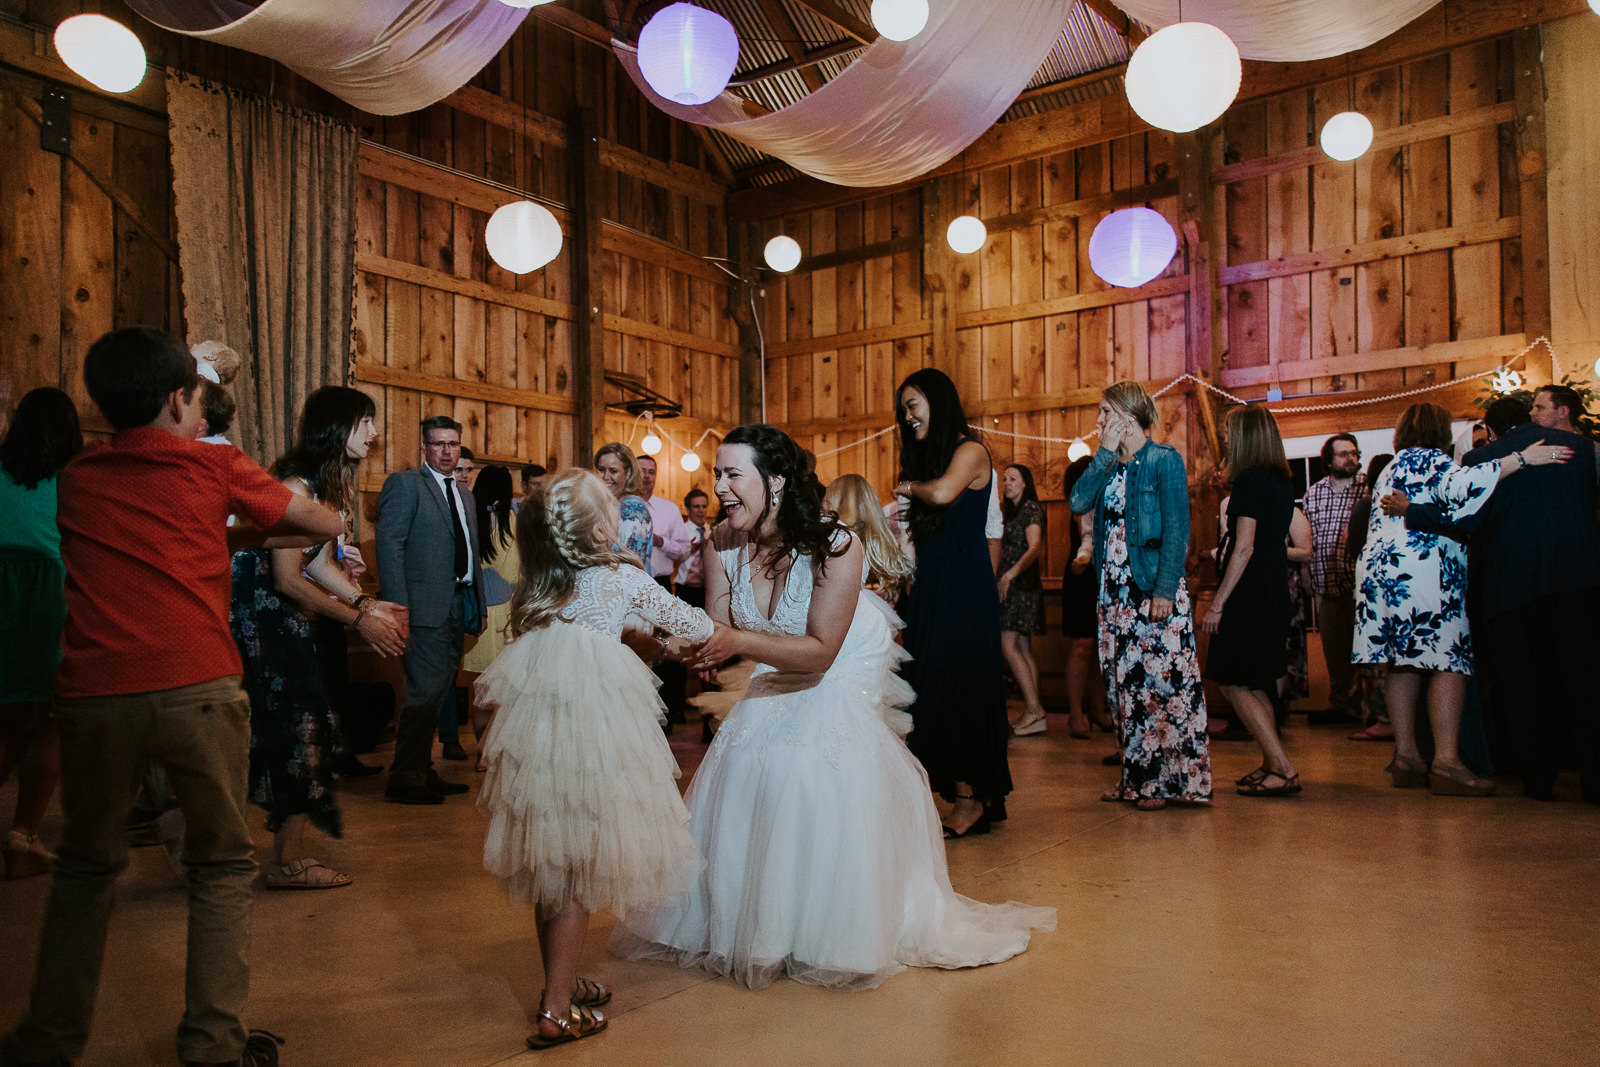 Bride laughing with young girl while dancing with paper lanterns adorning barn in Palisade, CO